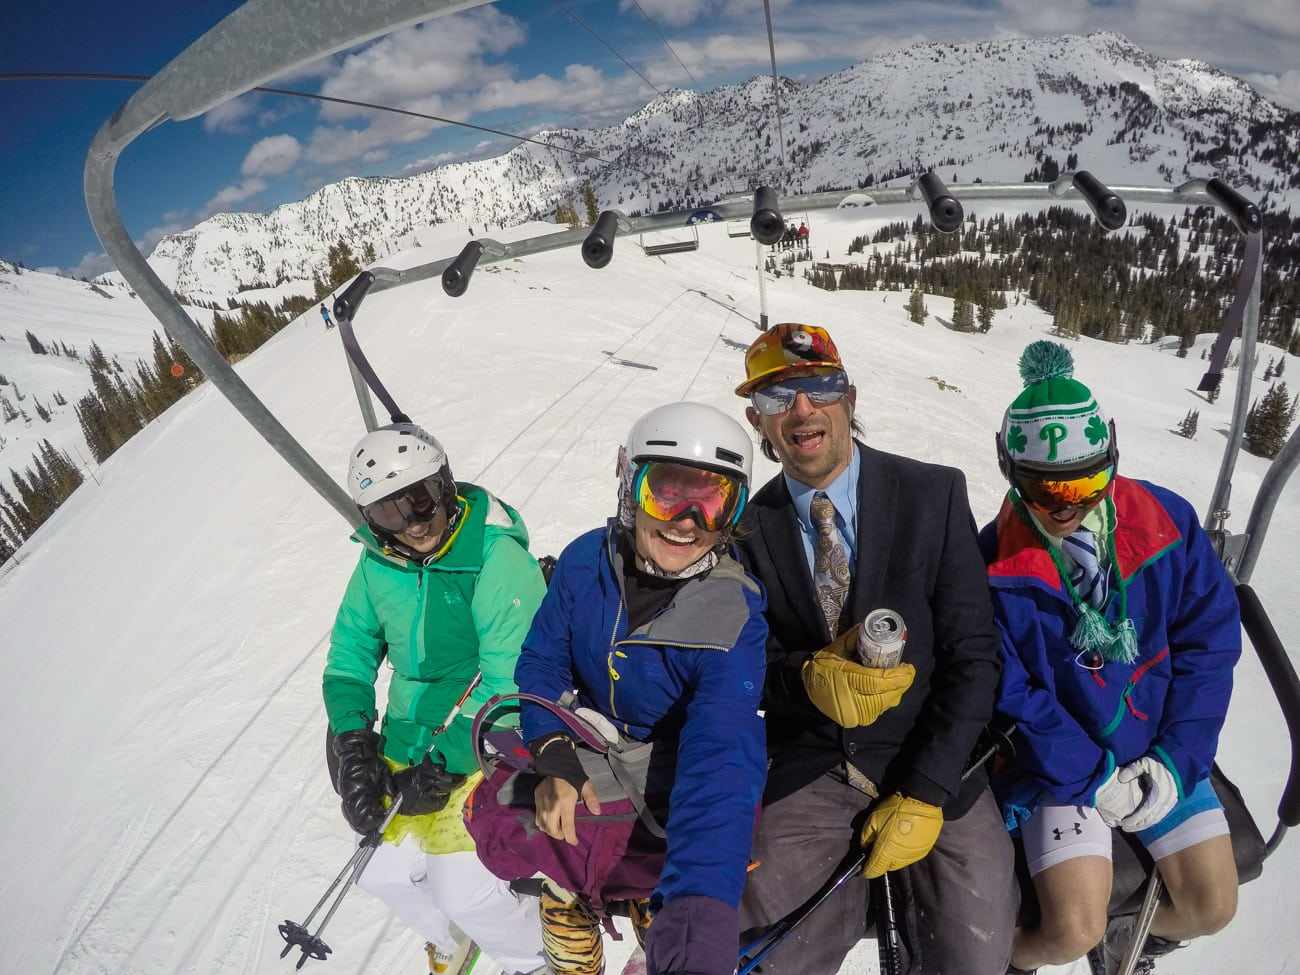 Closing Day at Alta: on the way to the High Boy Party